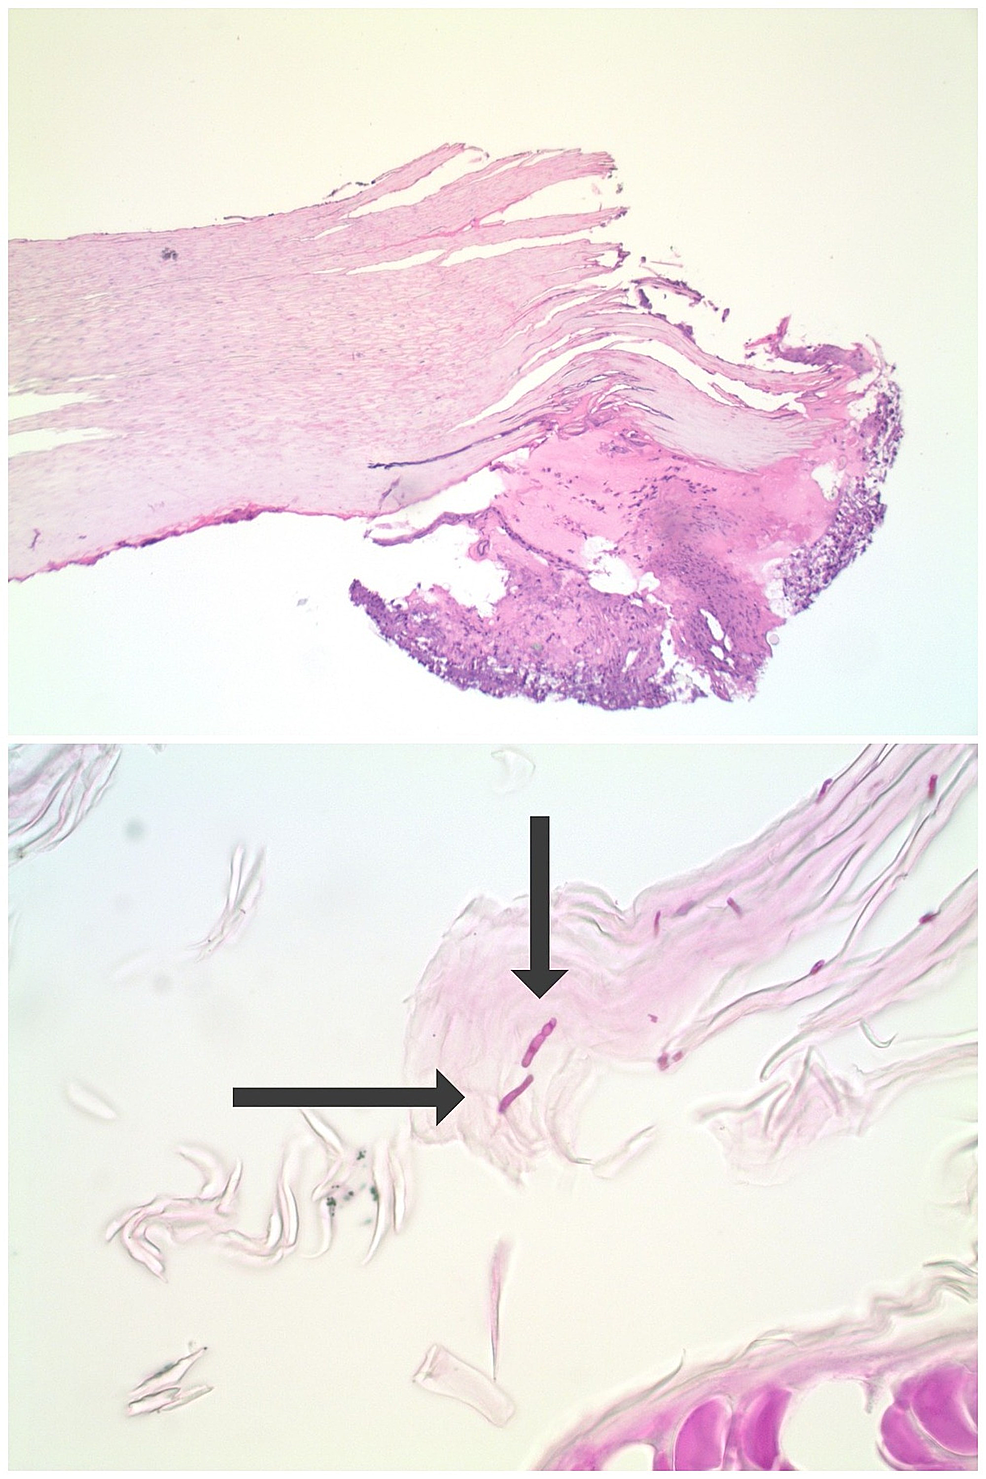 Onychomycosis-demonstrated-by-periodic-acid-Schiff-staining-of-fingernail-clippings.